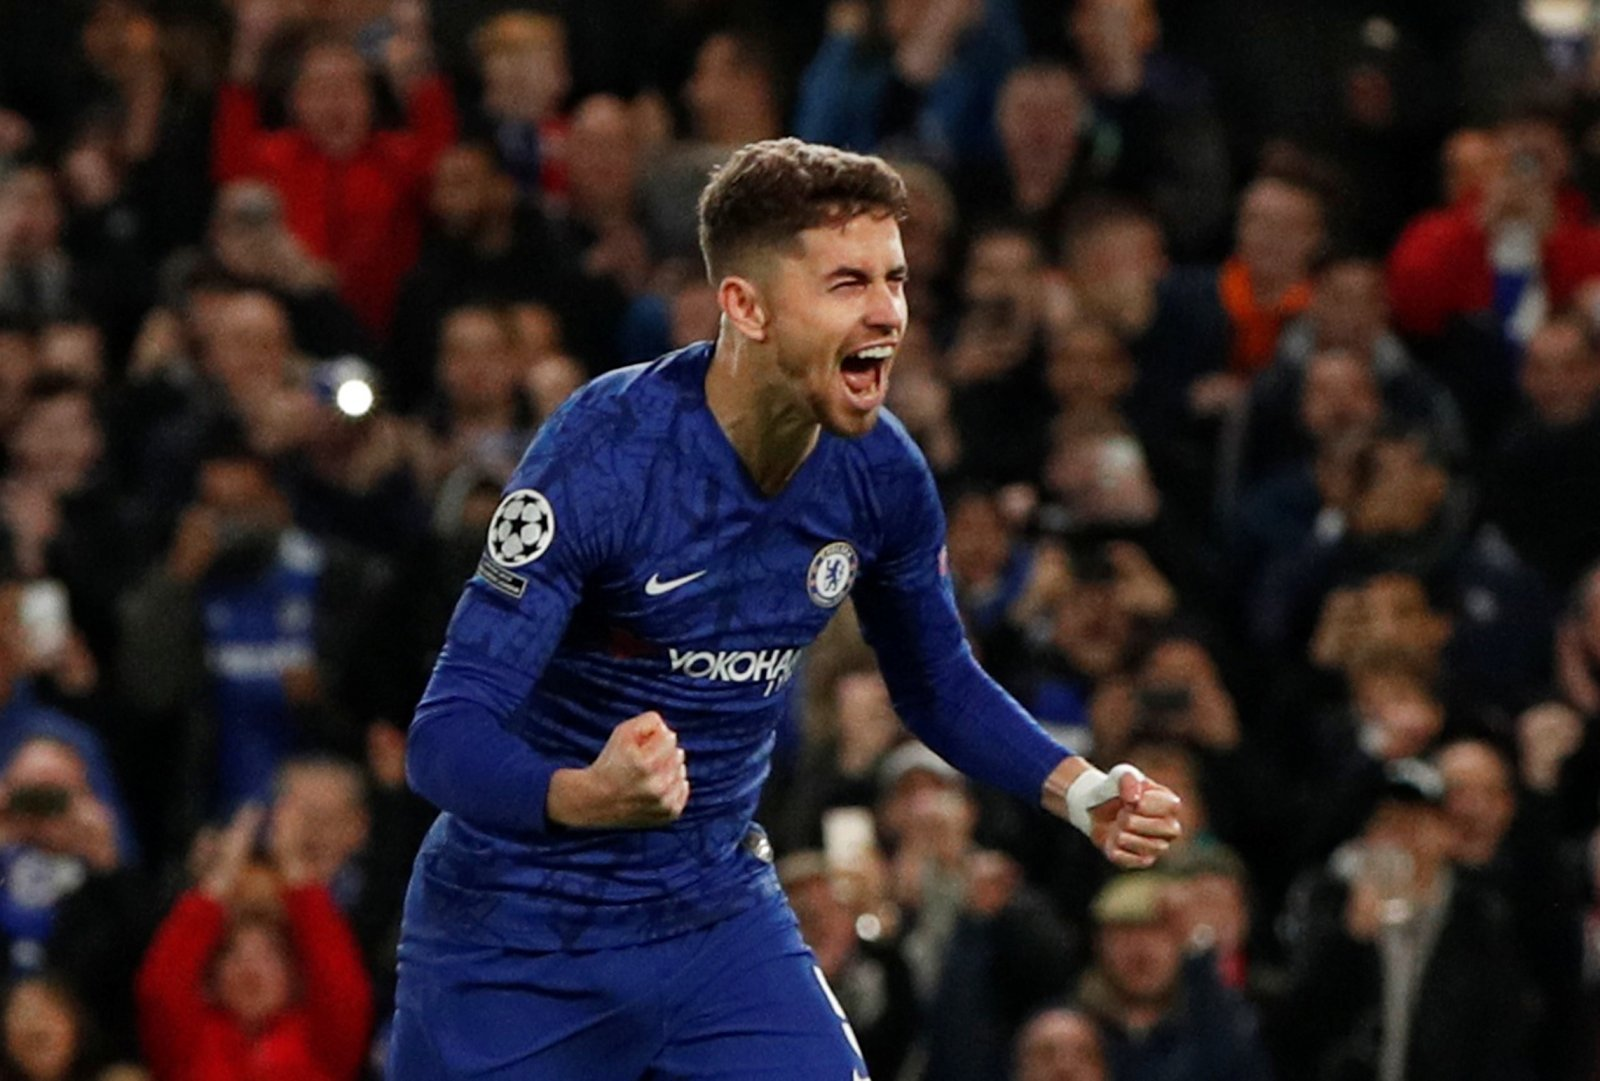 Chelsea: Fans choose Jorginho as man of the match after his role in Champions League comeback